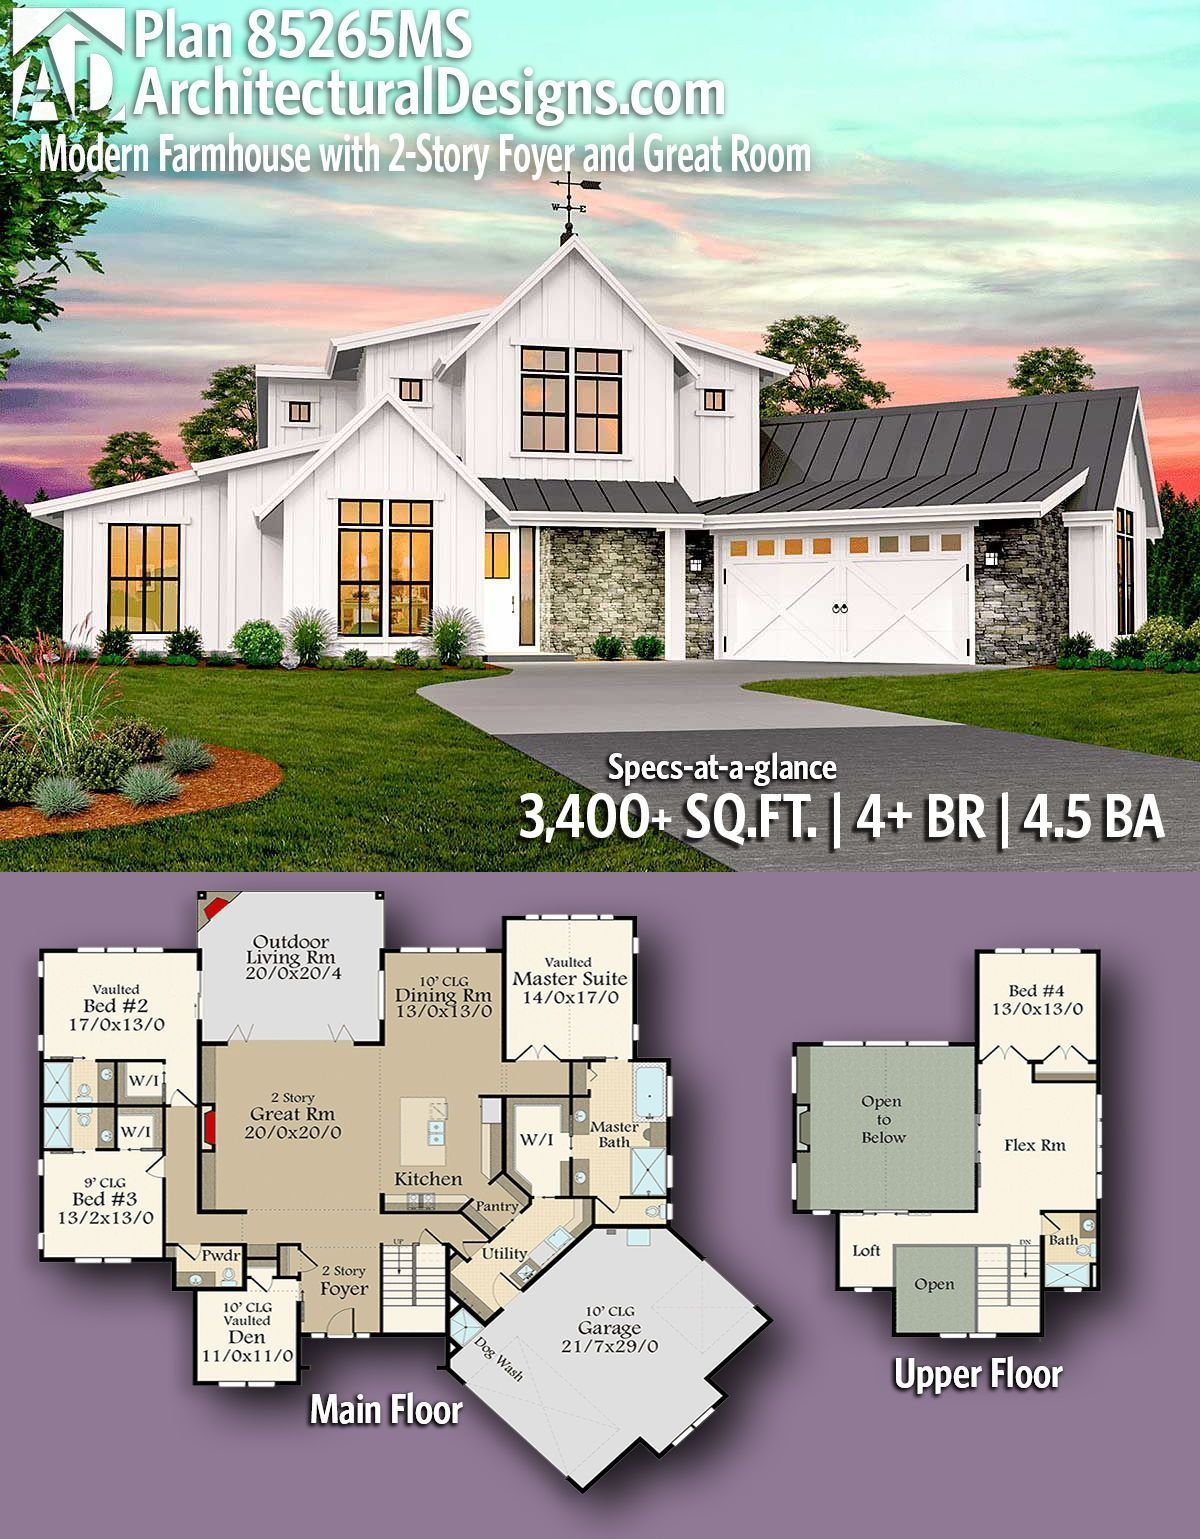 Introducing Architectural Designs Modern Farmhouse Plan 85265MS with 4  Bedrooms | 4 full baths and 1 half bath in just over 3,400  Sq Ft. with a finished walkout basement. Ready when you are! Where do YOU want to build?  #Modernfarmhouse